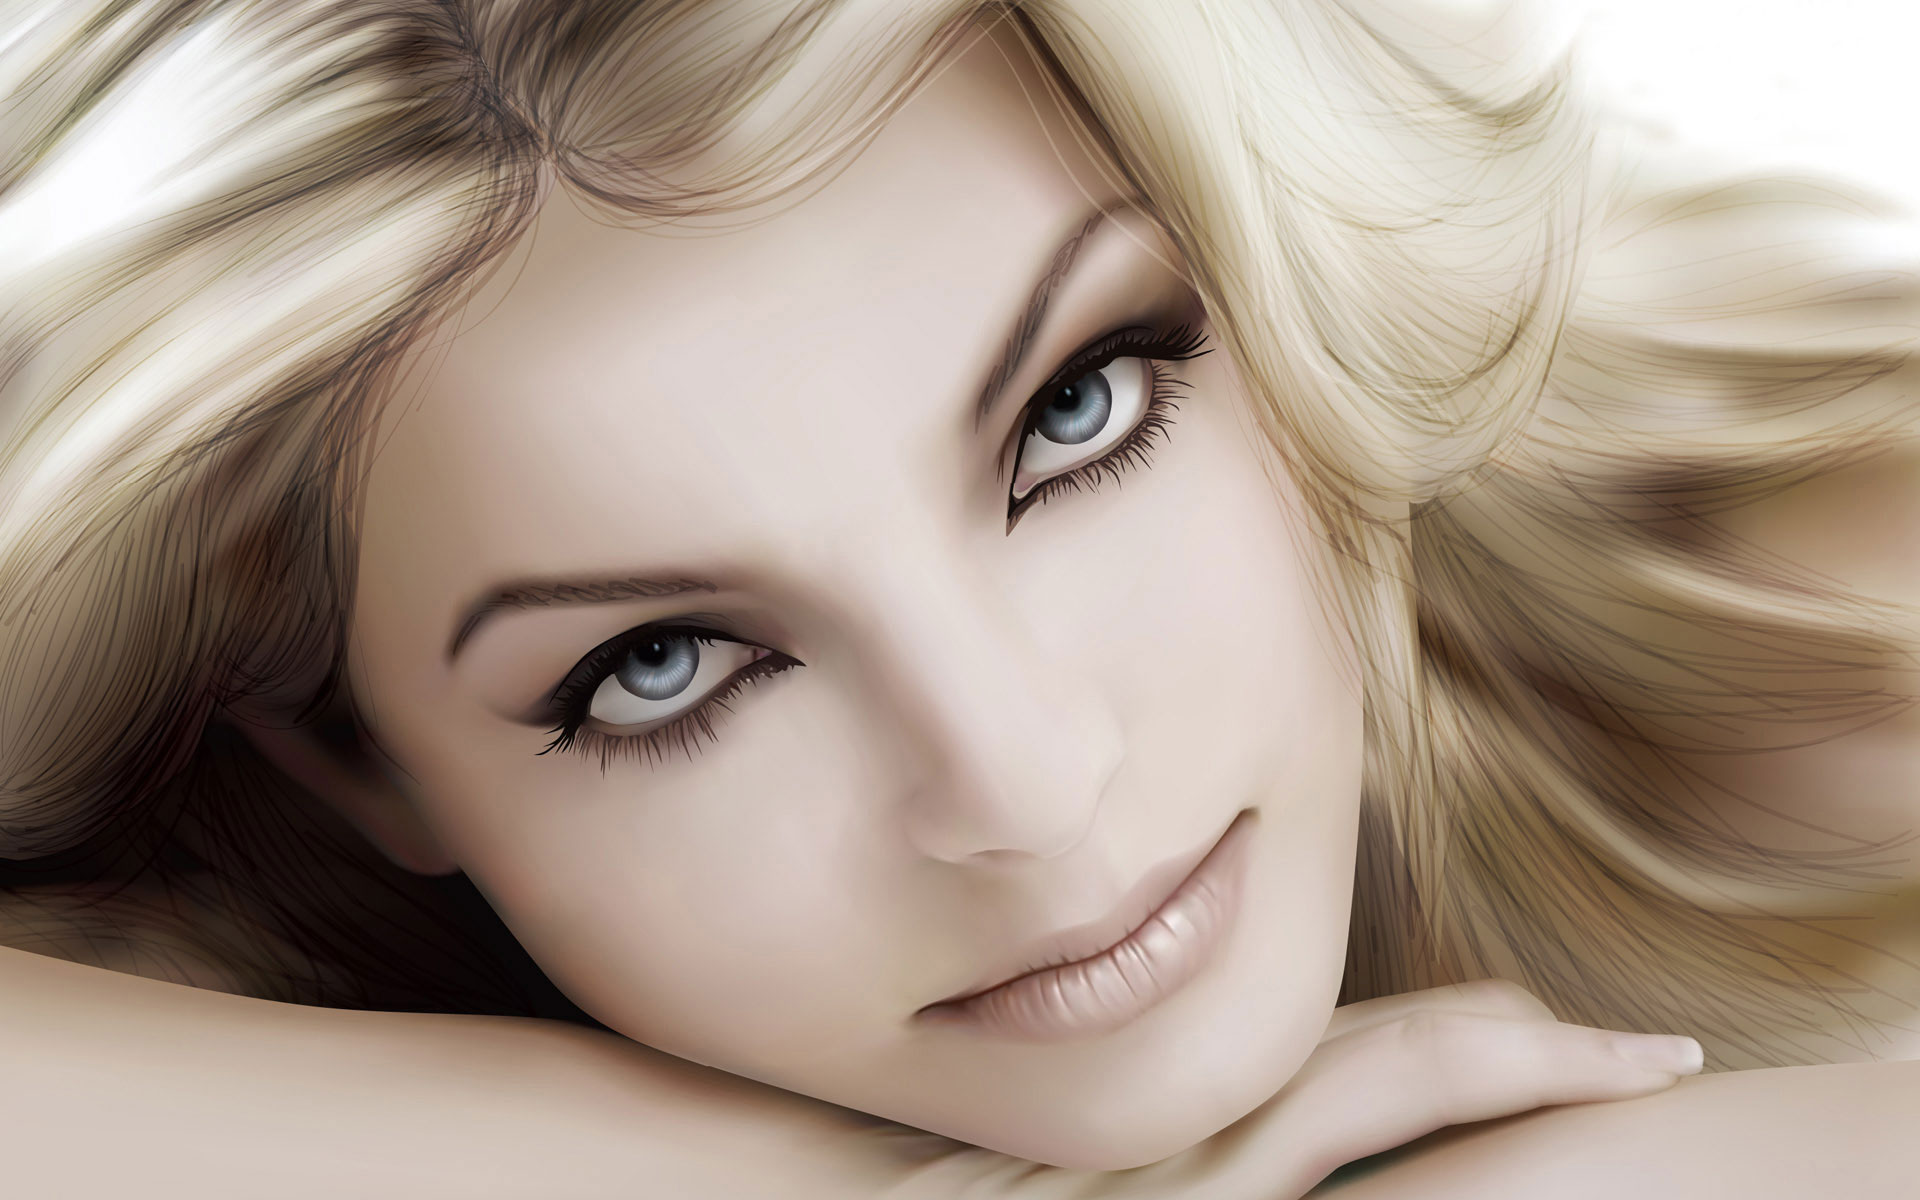 Beautiful Girl Hd Wallpapers